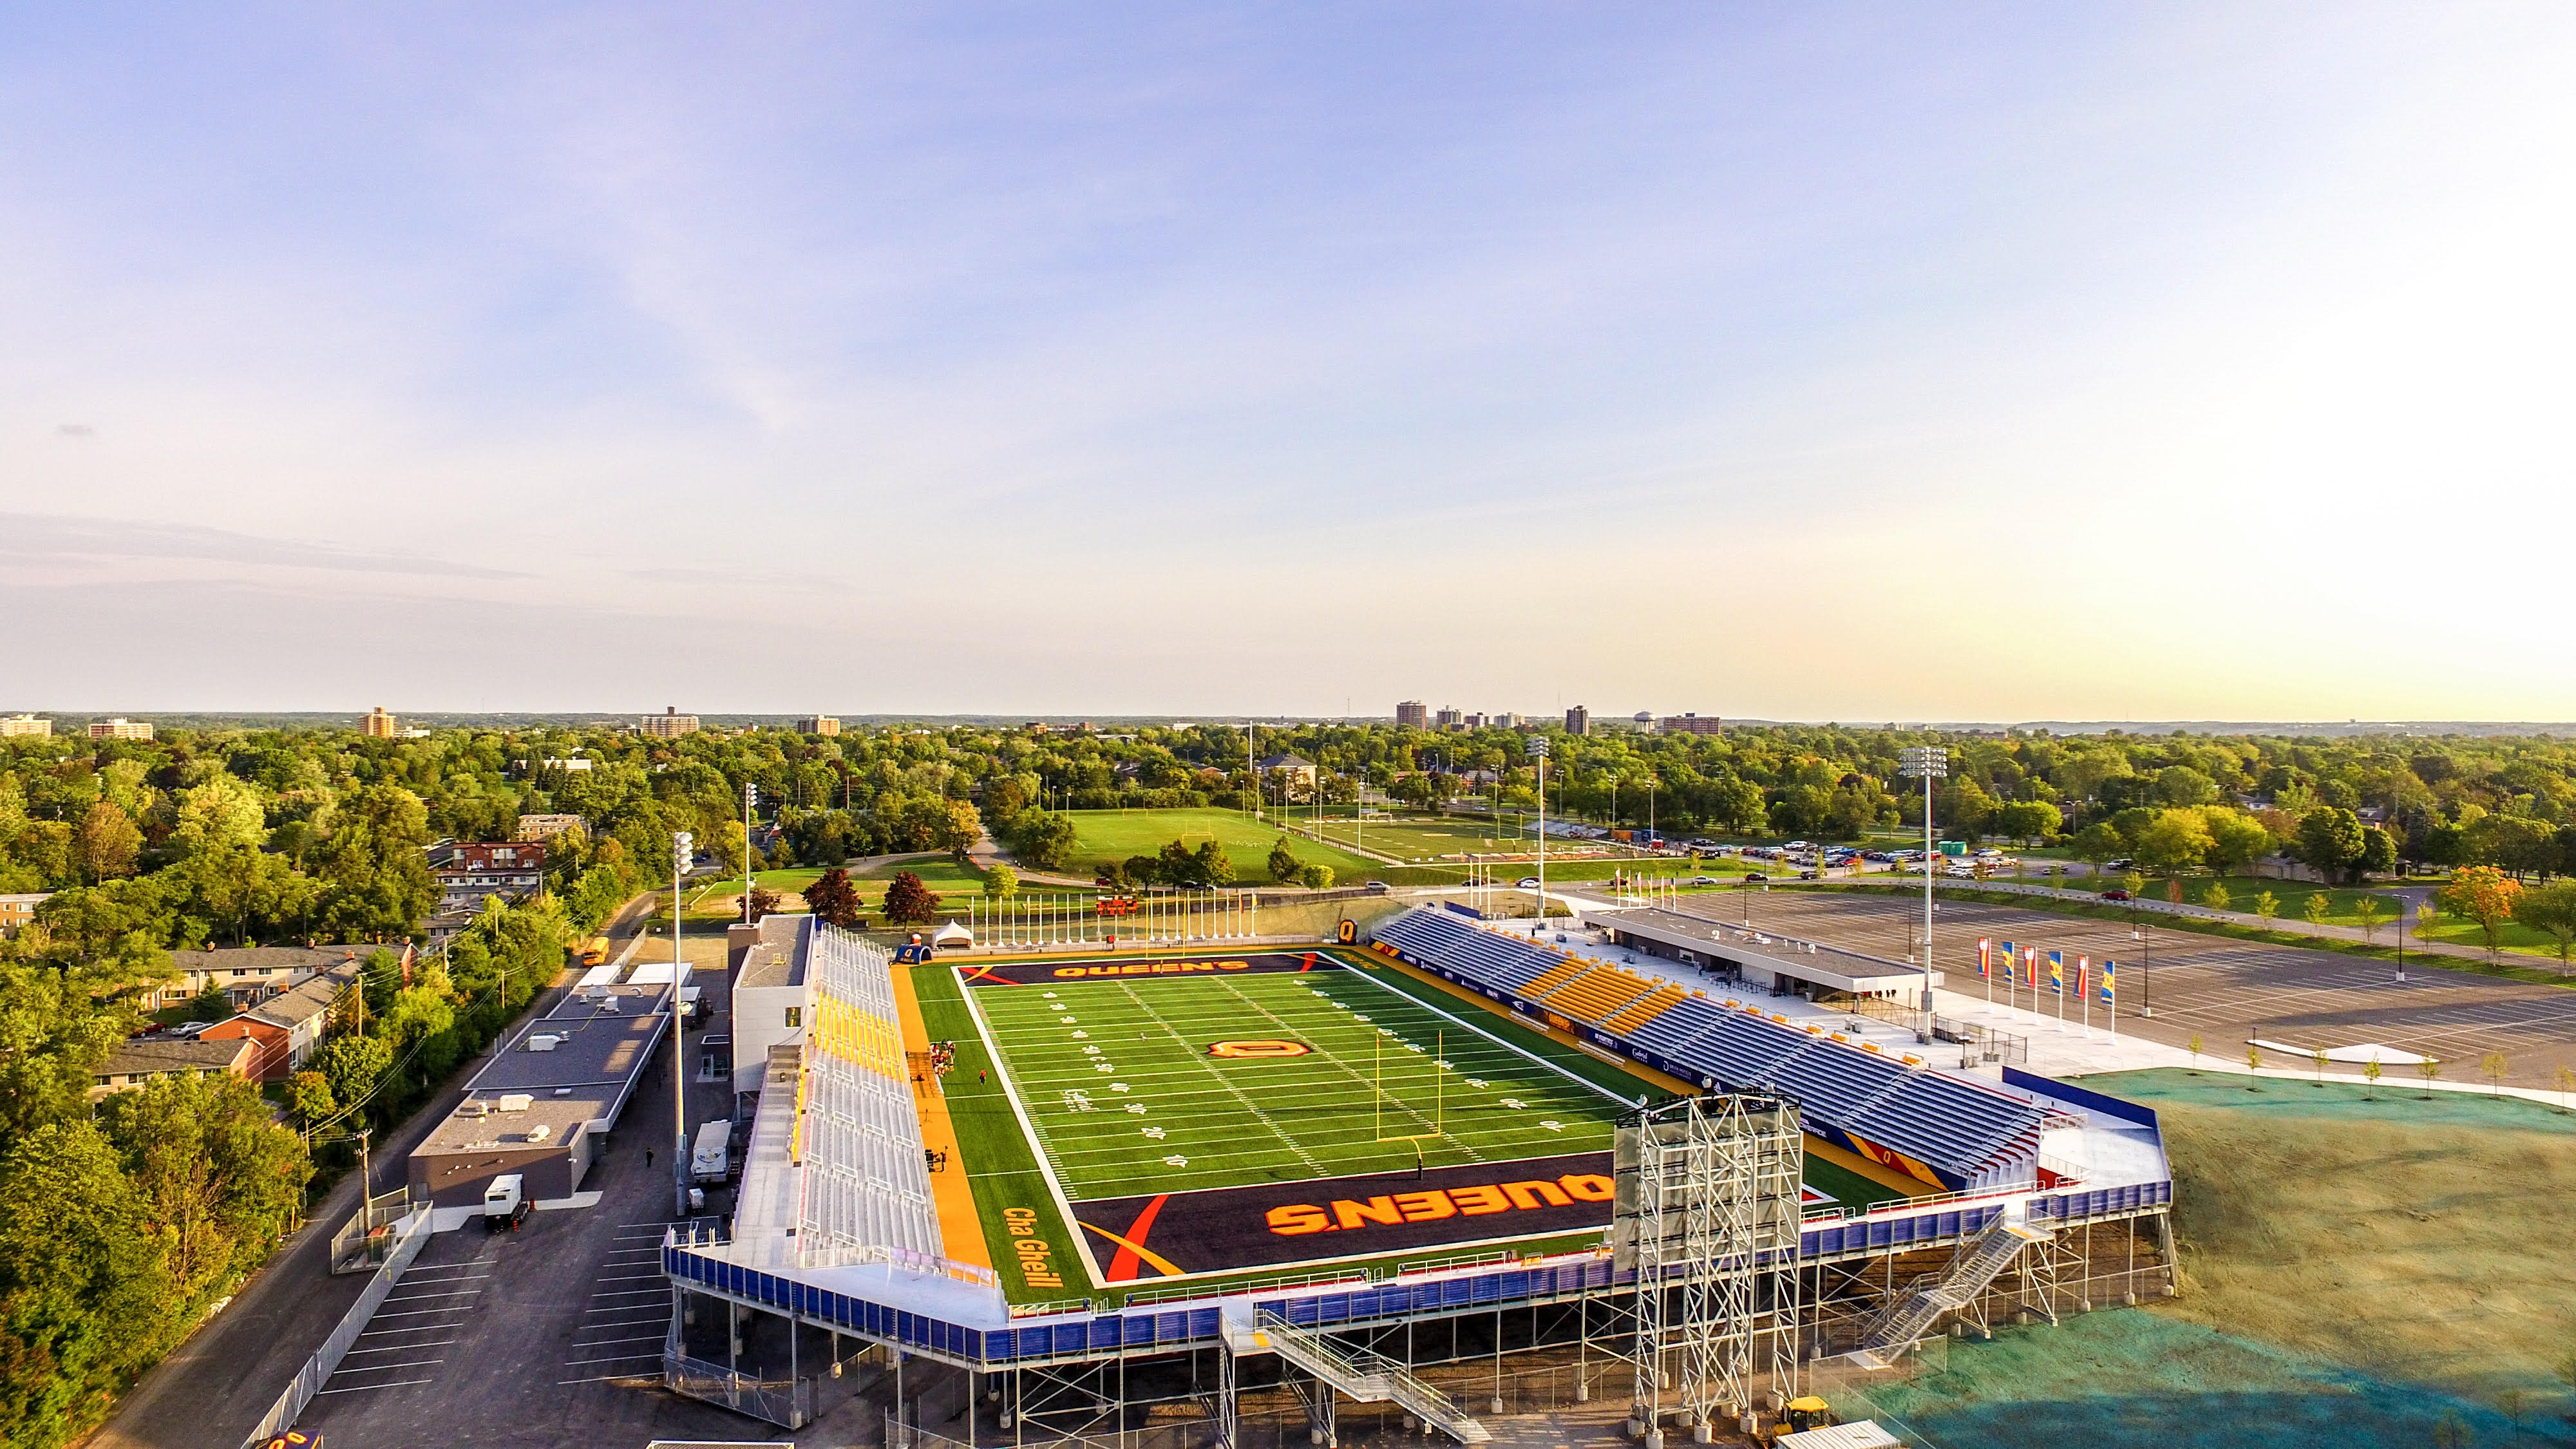 richardson-stadium-queen's-university-drone.jpg